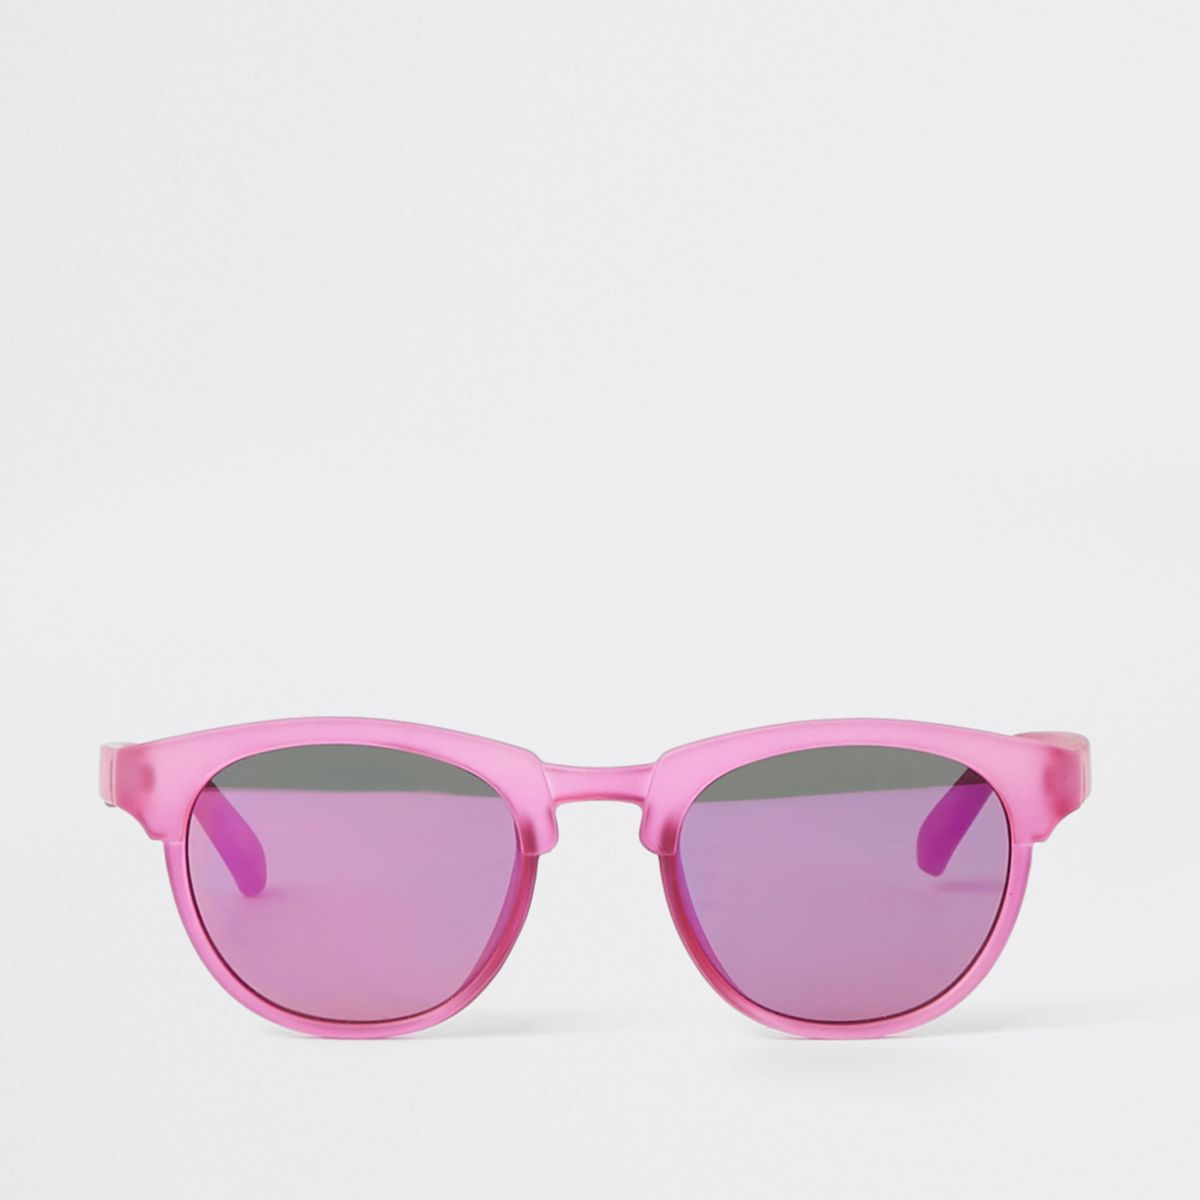 Mini girls purple flat top sunglasses